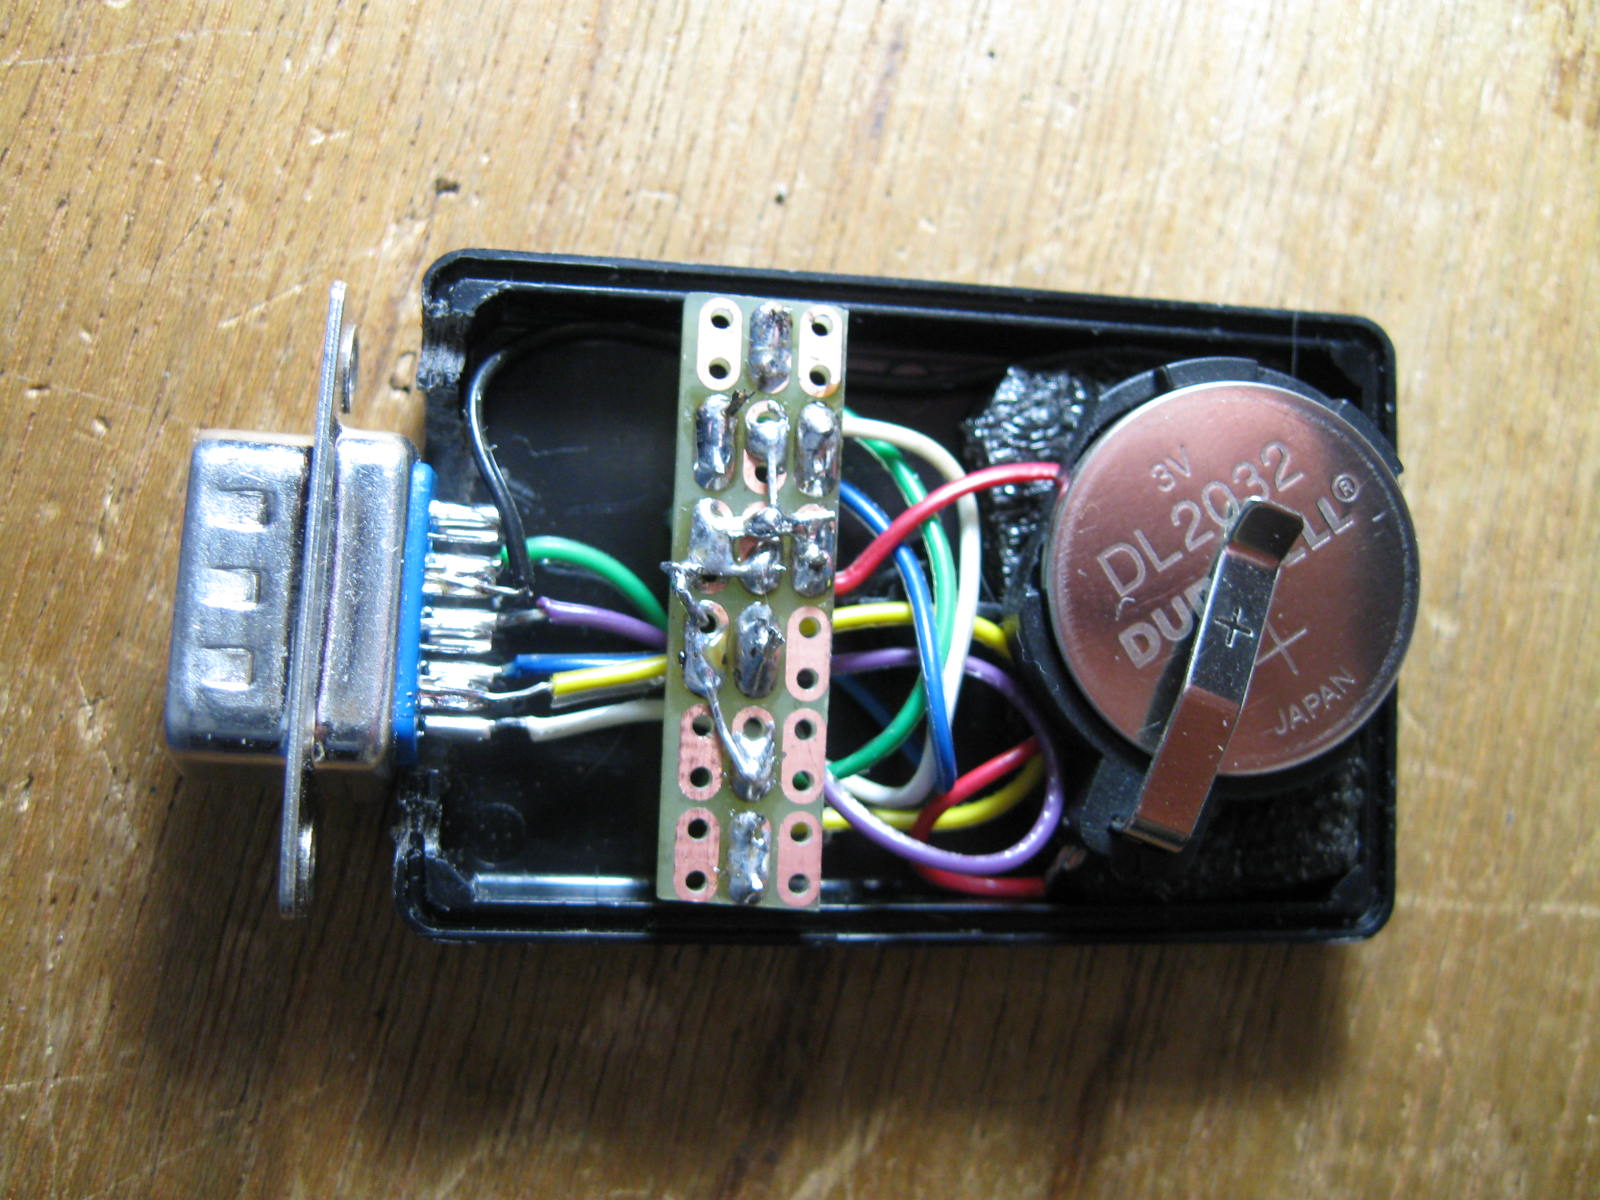 Pocket Joystick Tester Atariage Forums Wiring Diagram 51 19 Attached Image